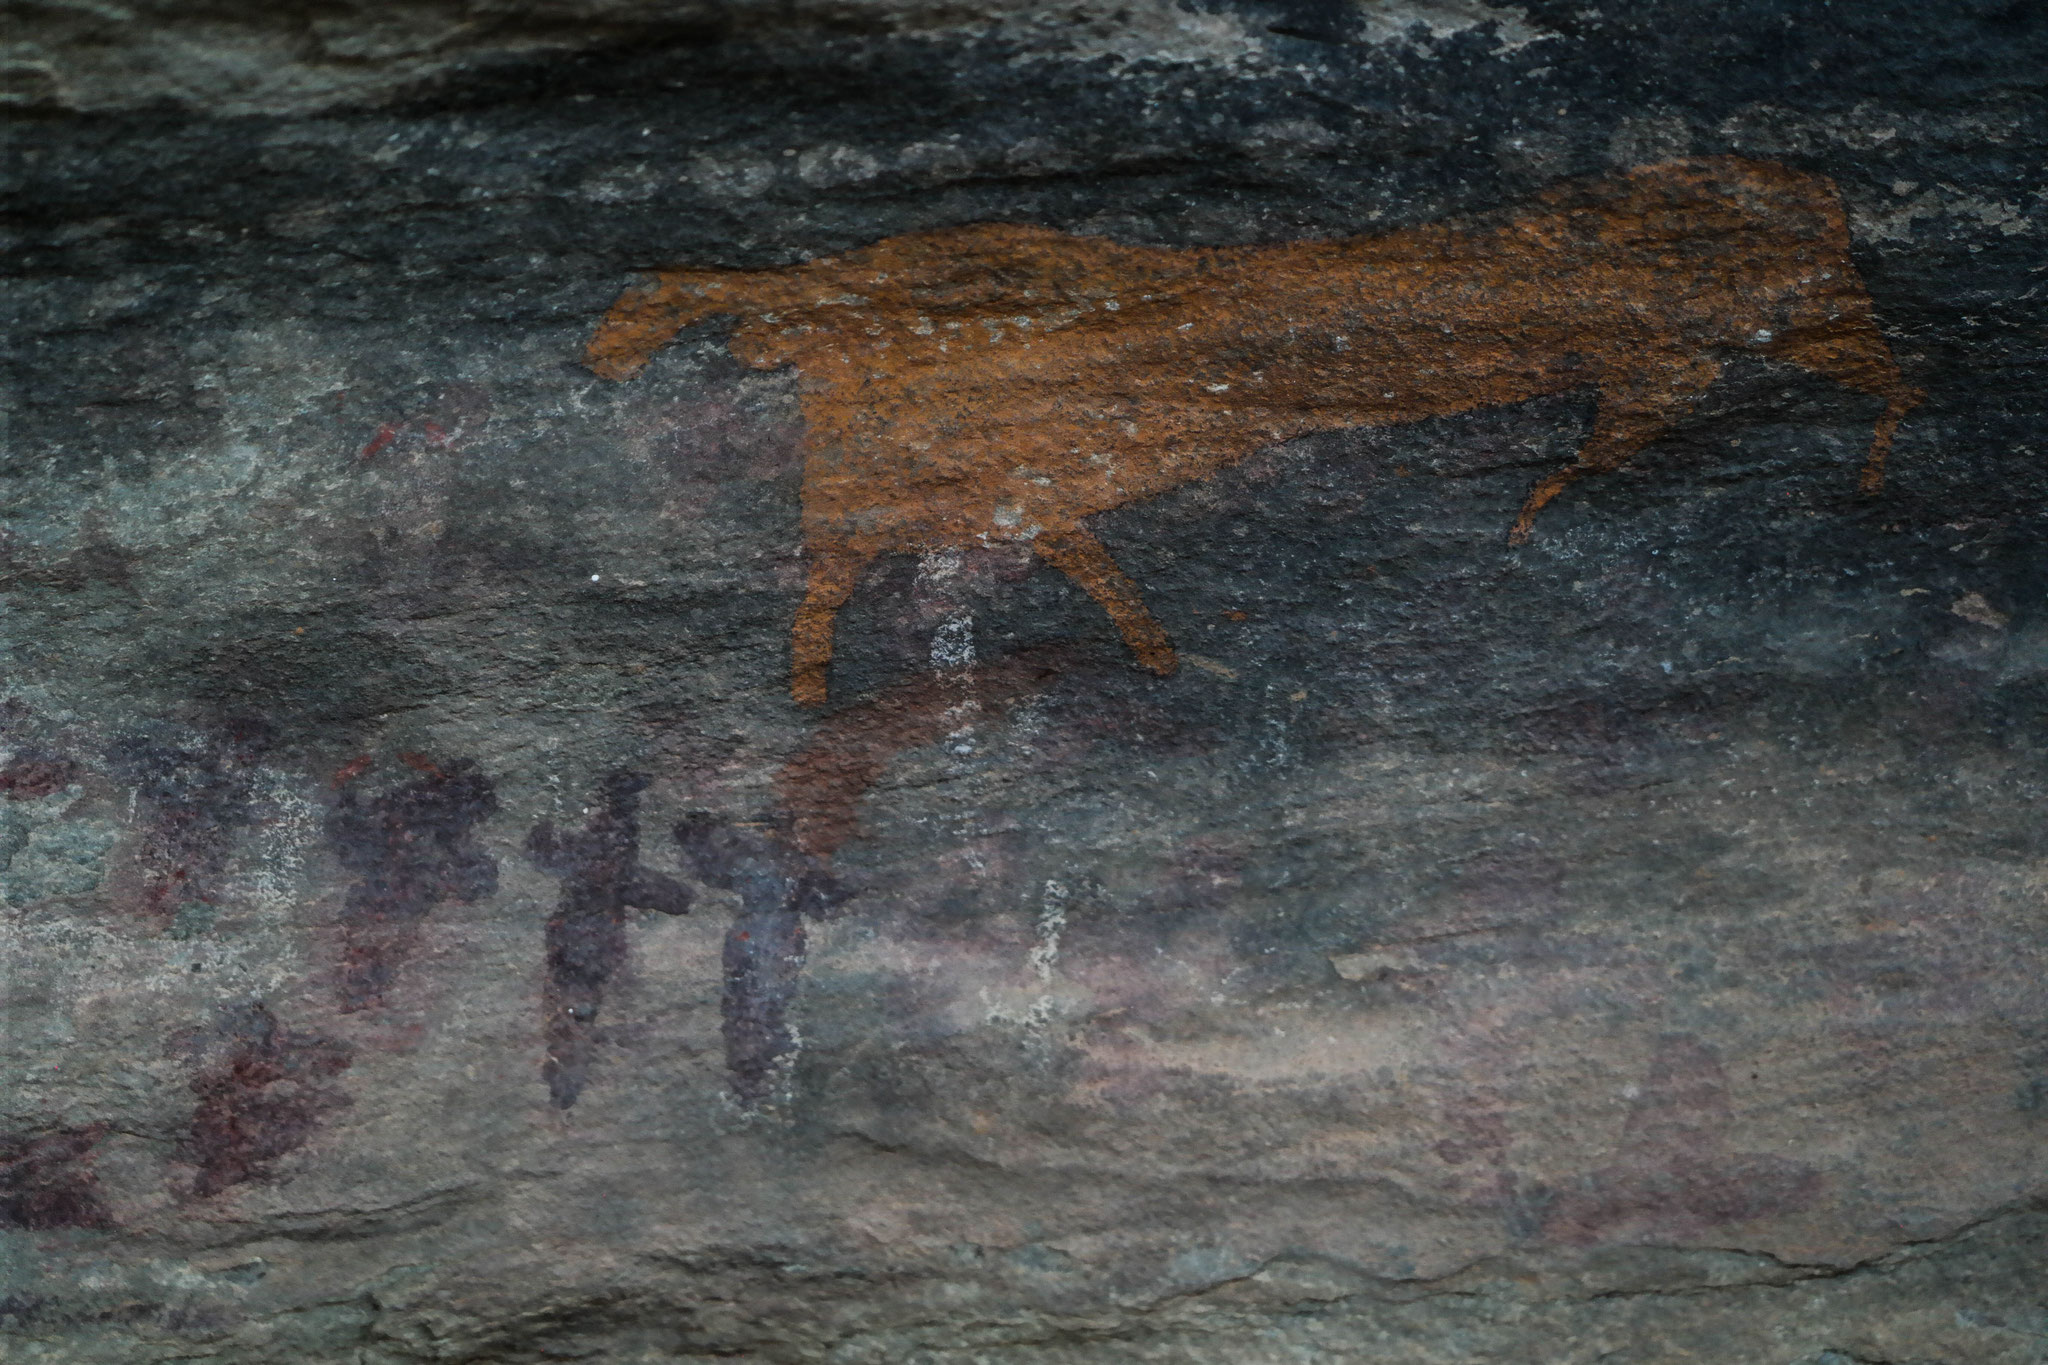 A brown animal painting with people in the bottom left.